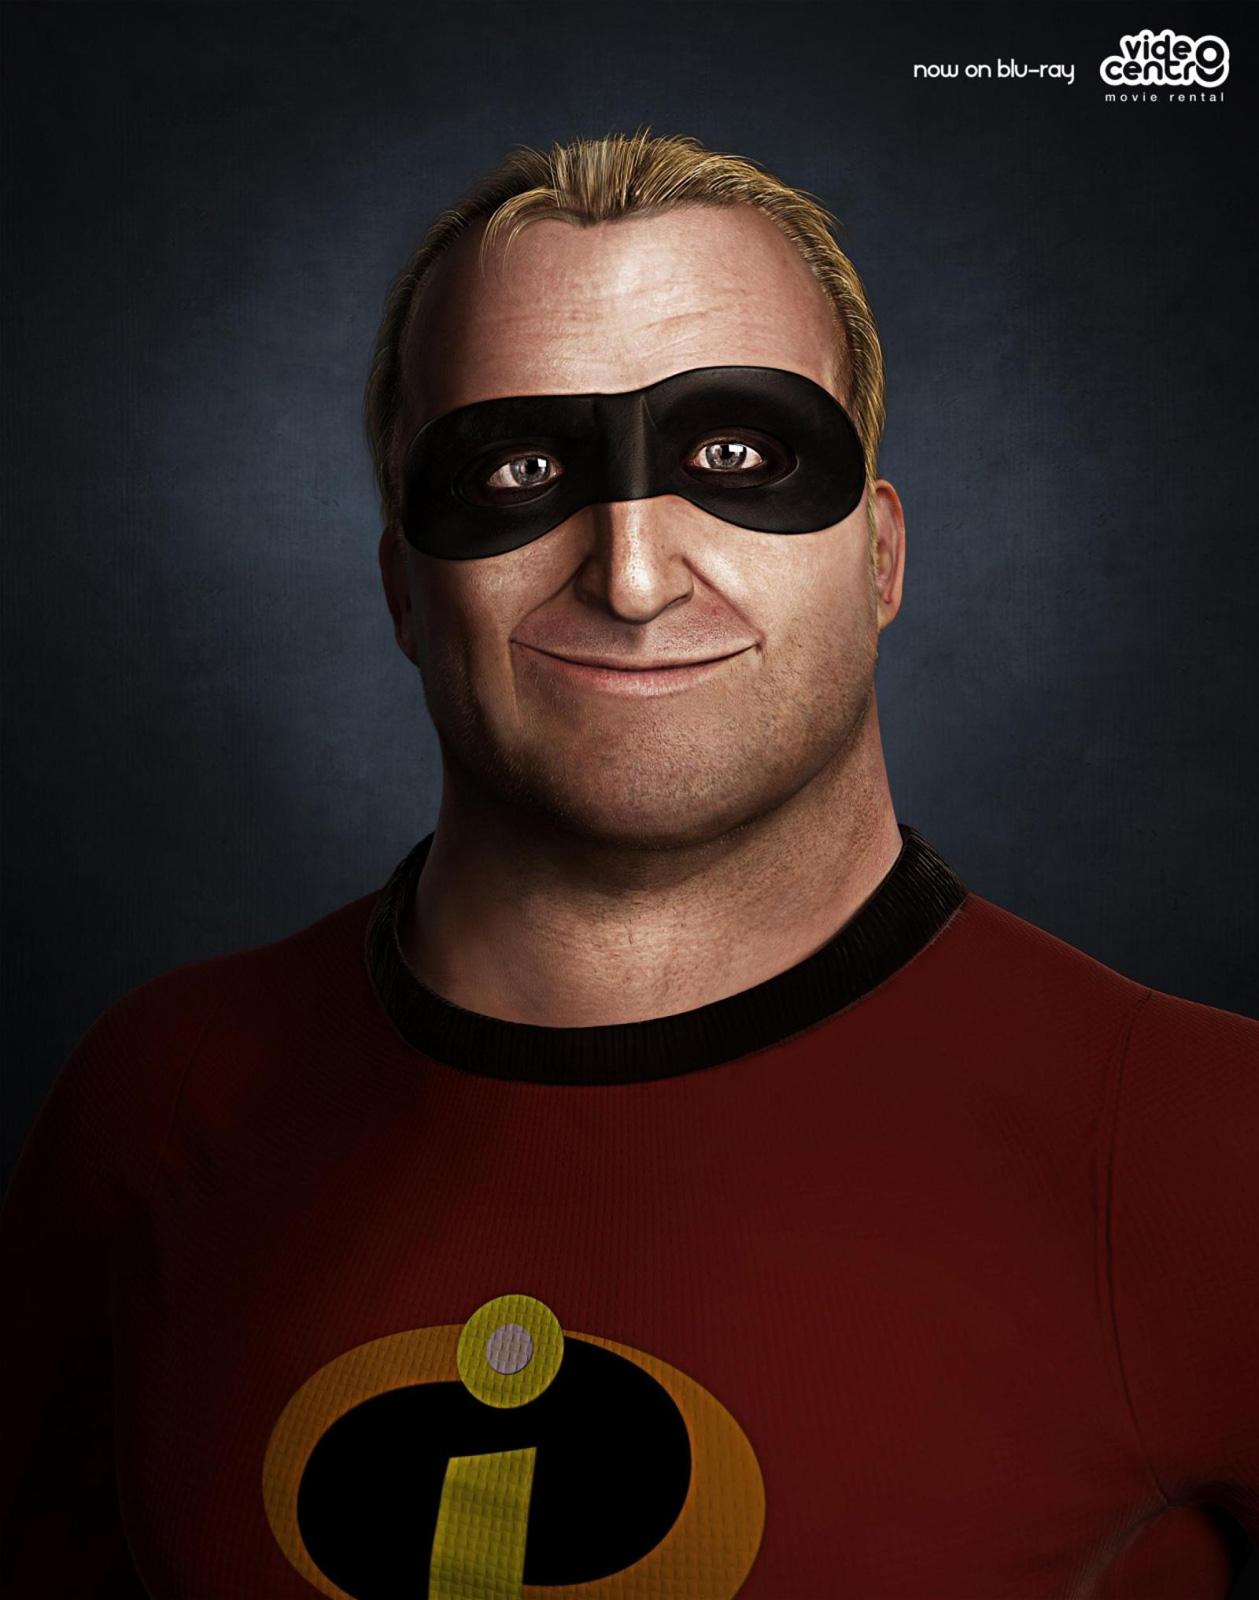 Video Centro Print Ad -  Mr. Incredible